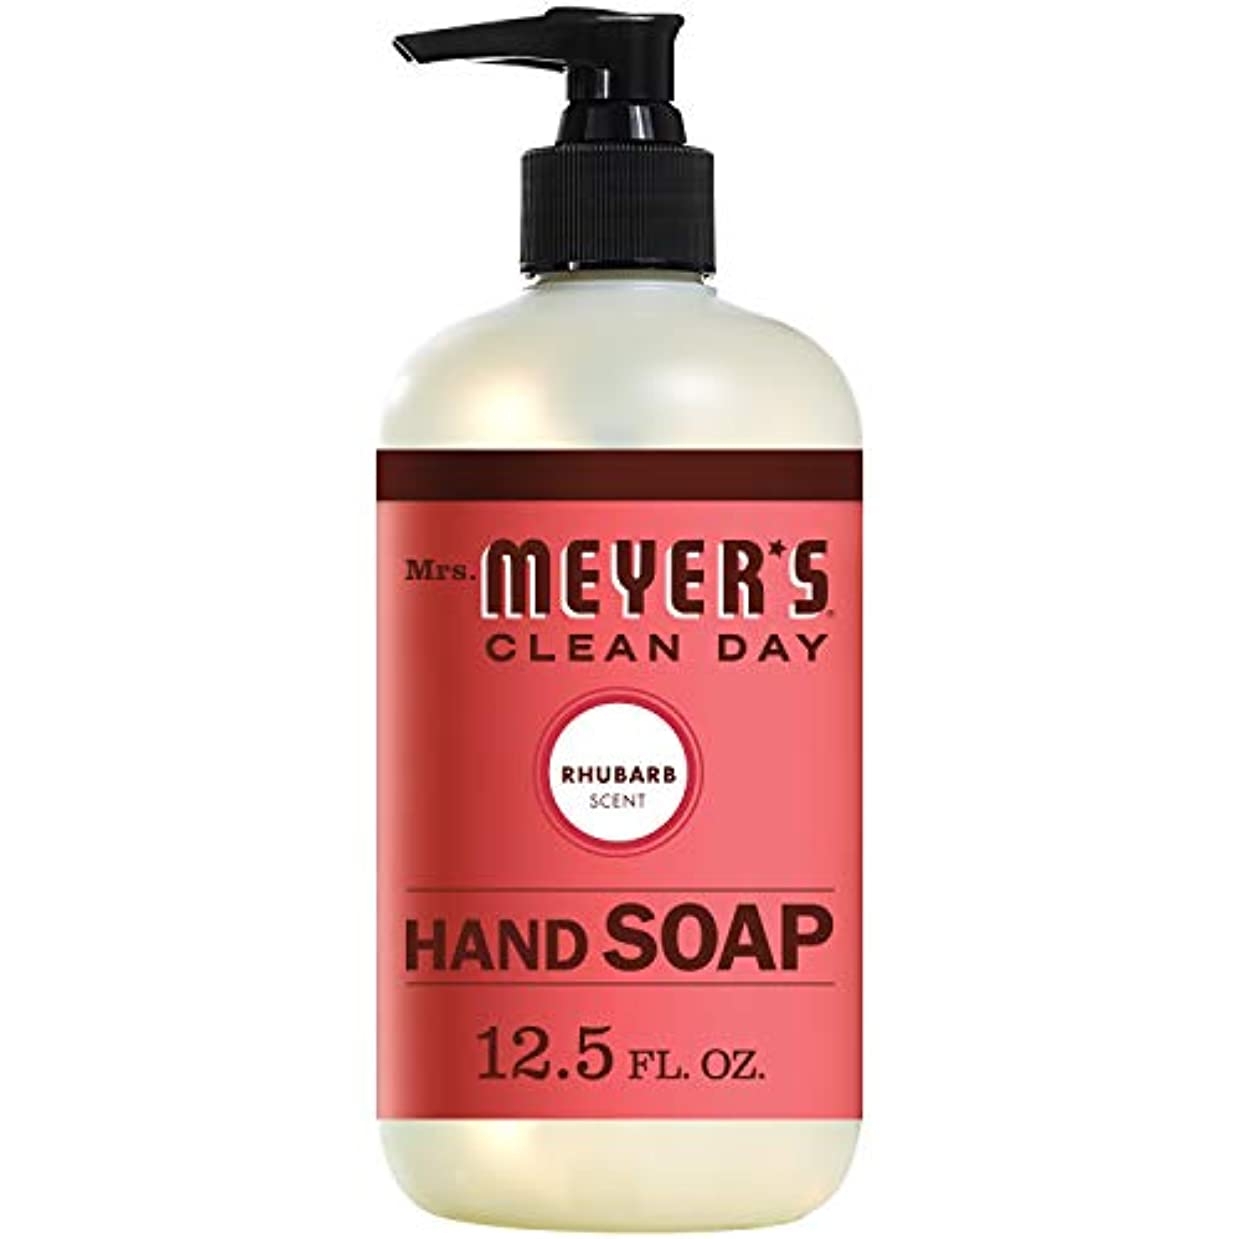 テレマコス共役エクスタシーMrs. Meyers Clean Day, Liquid Hand Soap, Rhubarb Scent, 12.5 fl oz (370 ml)